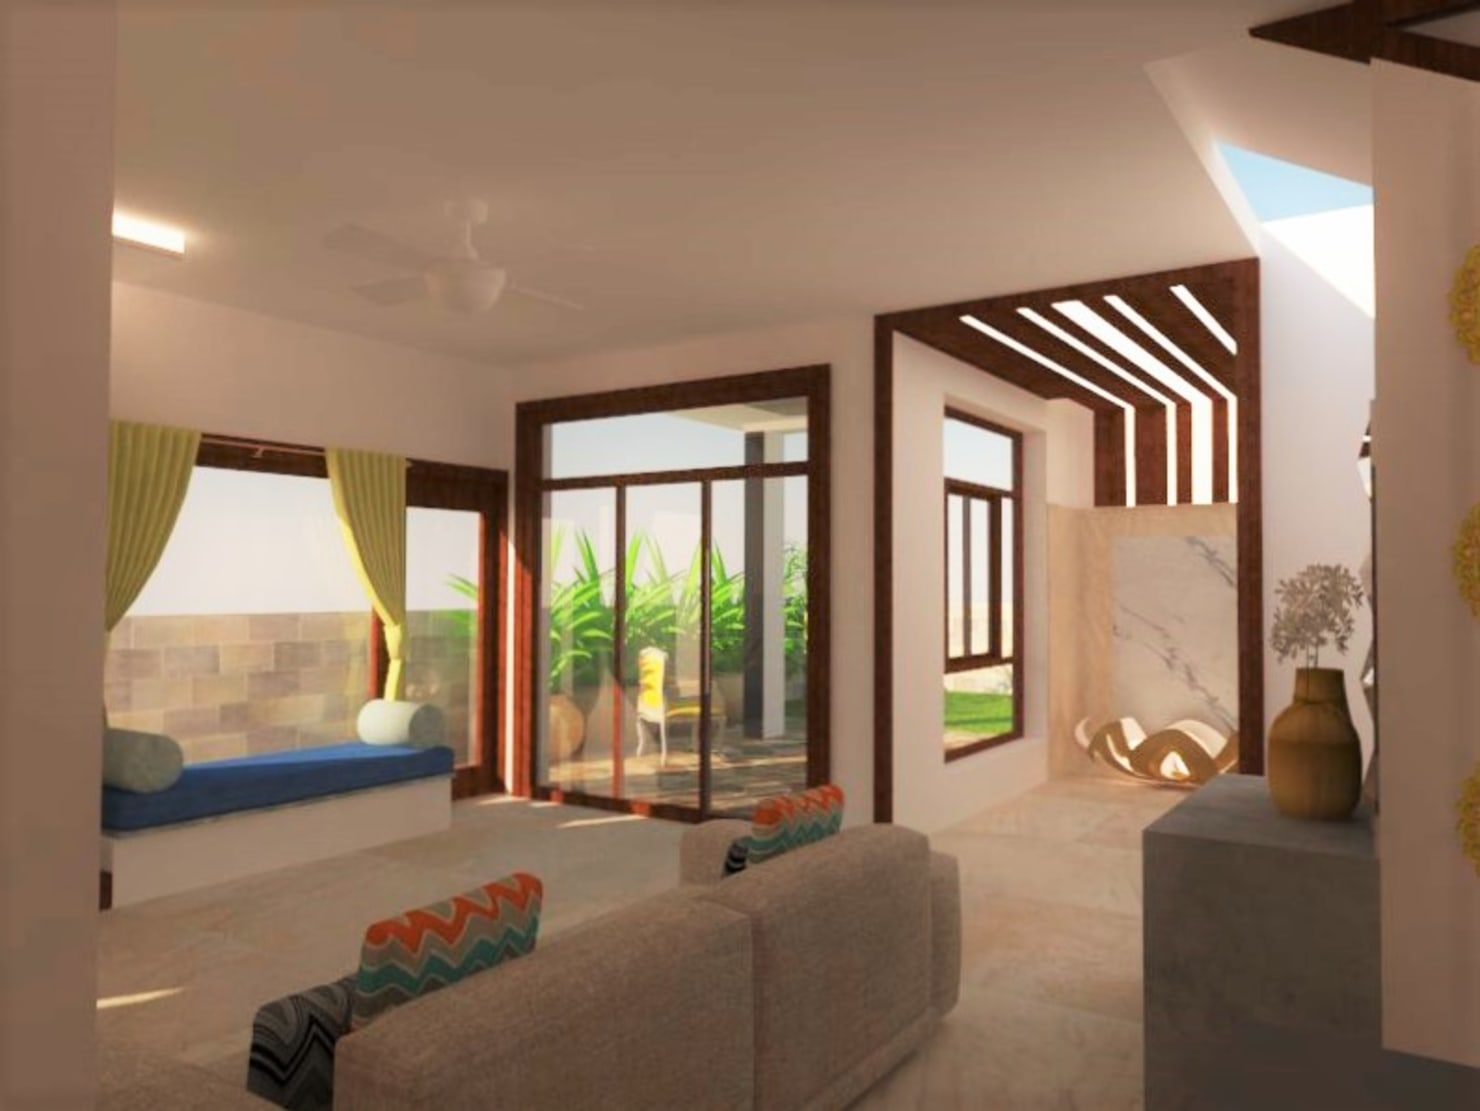 How to make your home suitable for meditation